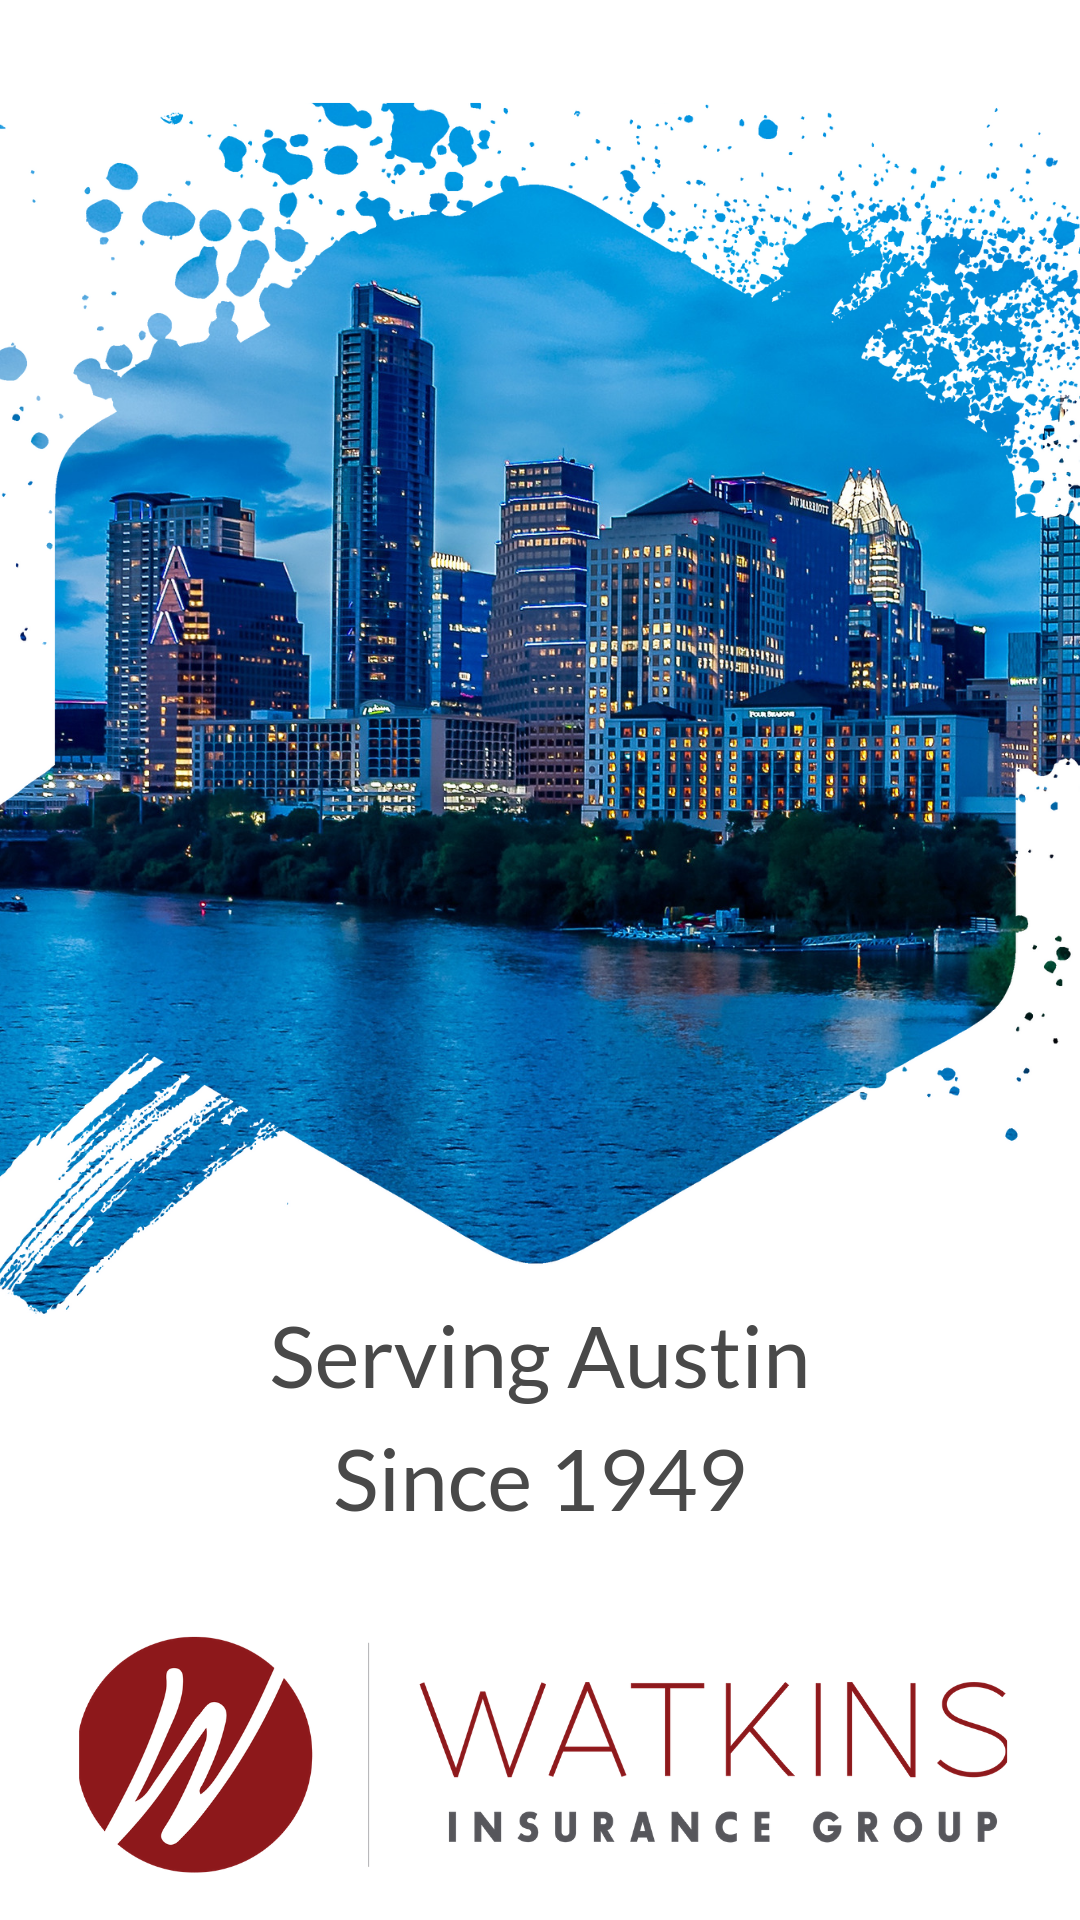 Since 1949, we have been a part of the fabric of Austin